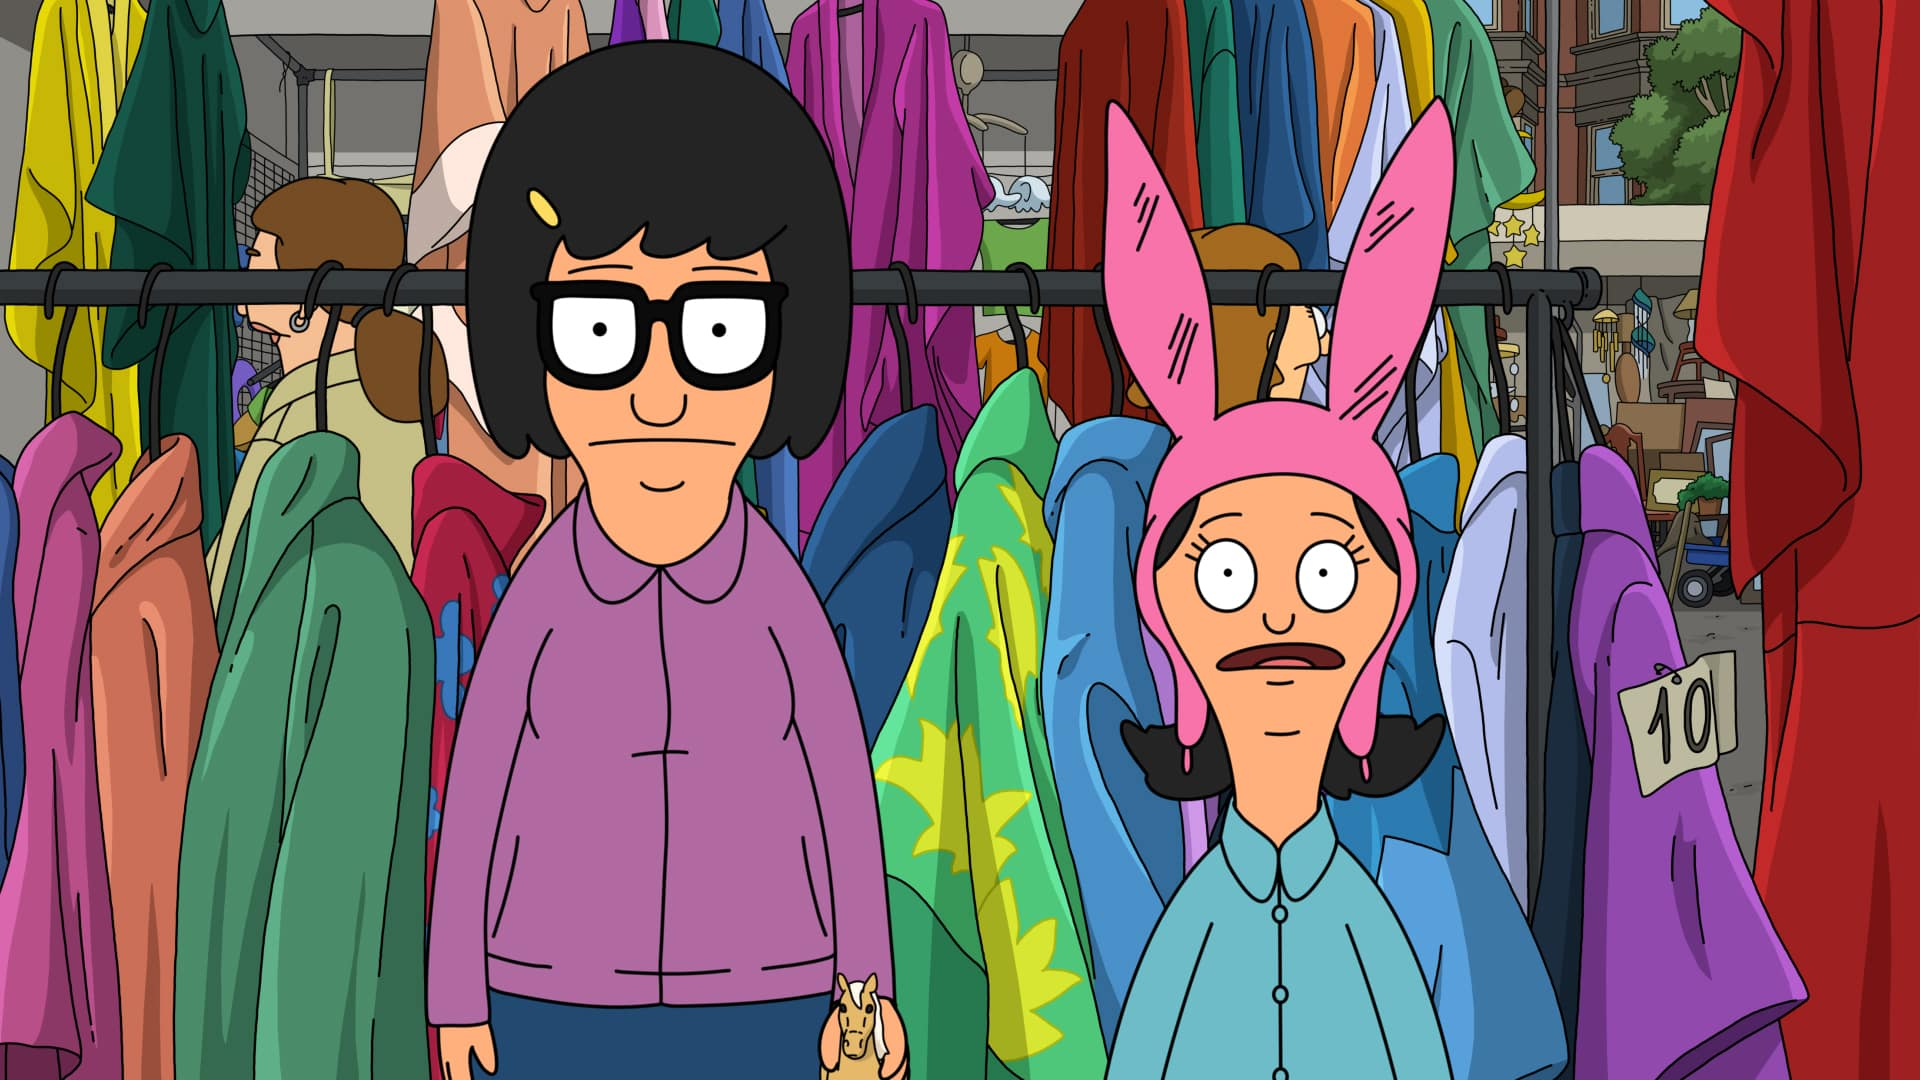 """BOB'S BURGERS Season 11 Episode 13 : While on a family trip to the flea market, Bob and Linda are haunted by a lie they told Tina, Gene and Louise about what really happened to their beloved stuffed animal, Wheelie Mammoth, in the """"An Incon-wheelie-ent Truth"""" episode of BOB'S BURGERS airing Sunday, March 7 (9:00-9:30 PM ET/PT) on FOX. BOB'S BURGERS © 2021 by 20th Television."""